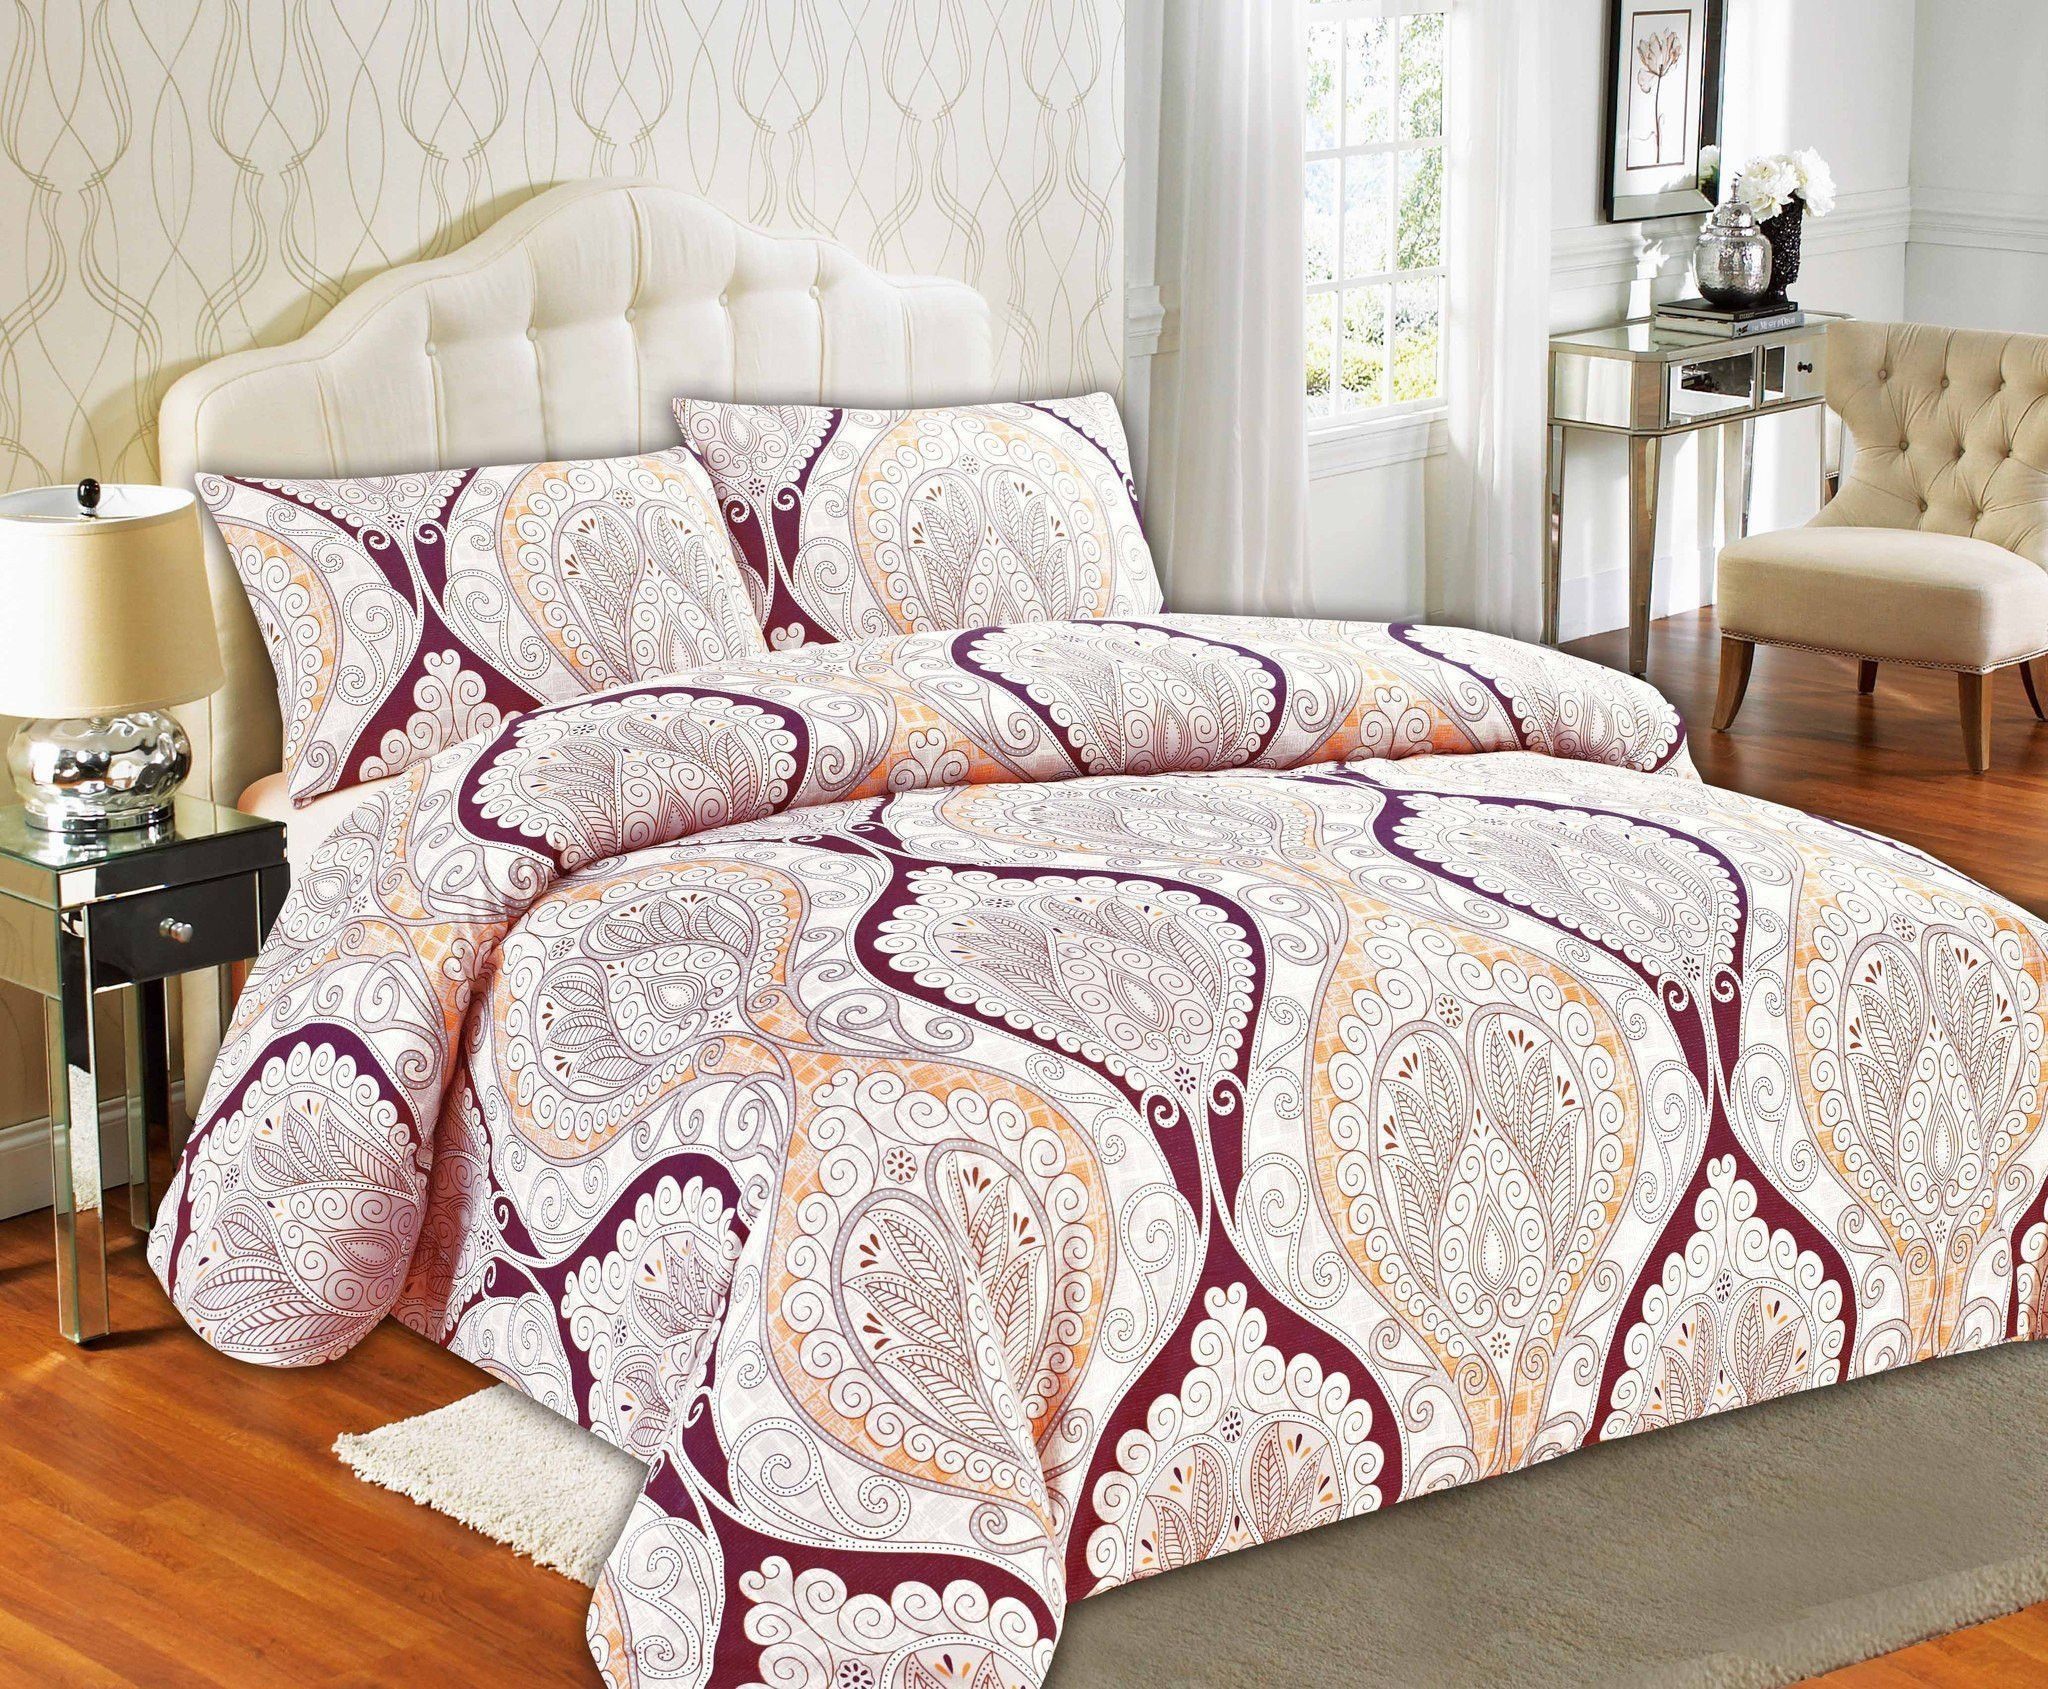 bedding timber duvet rustic of patterned grove quilt with maroon tache mandala fabulous fancy gallery covers cotton